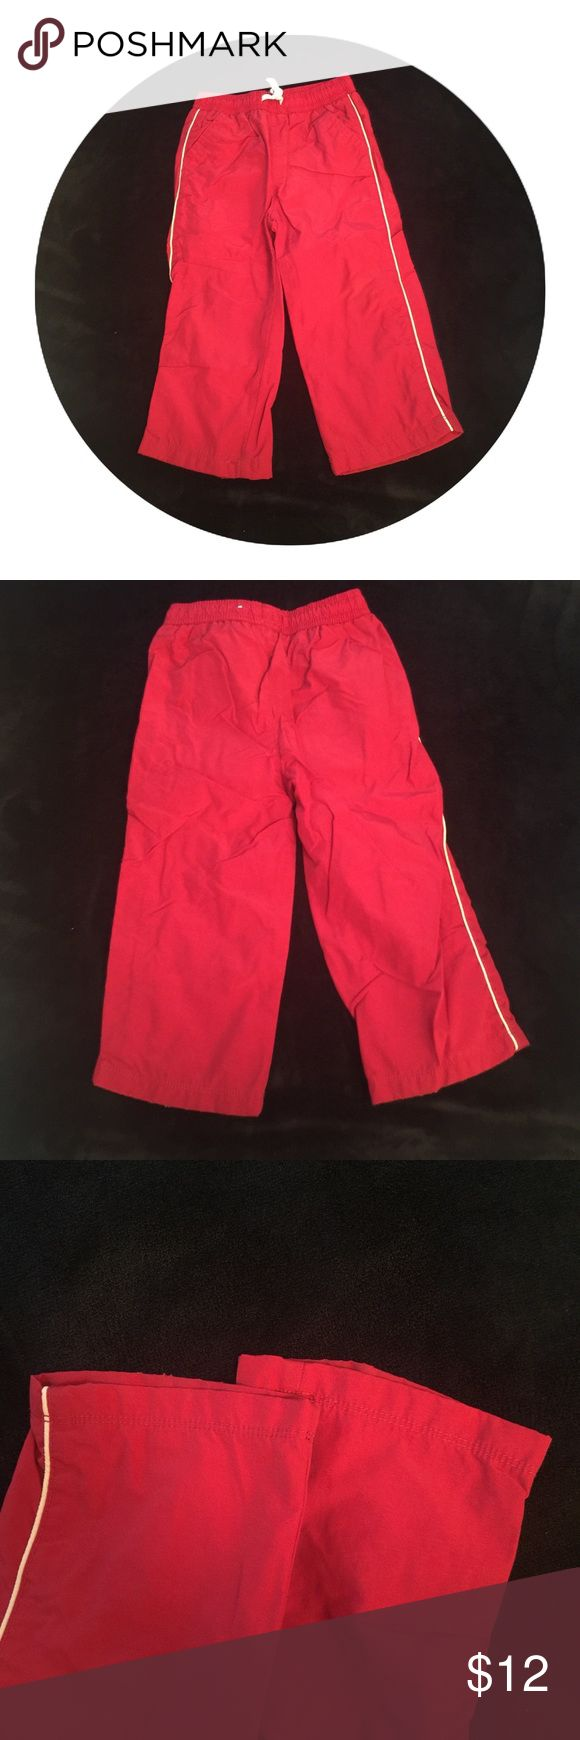 Boys Red Jogger Pants 2T 🎀No tears or stains🎀 Children's Place Bottoms Sweatpants & Joggers